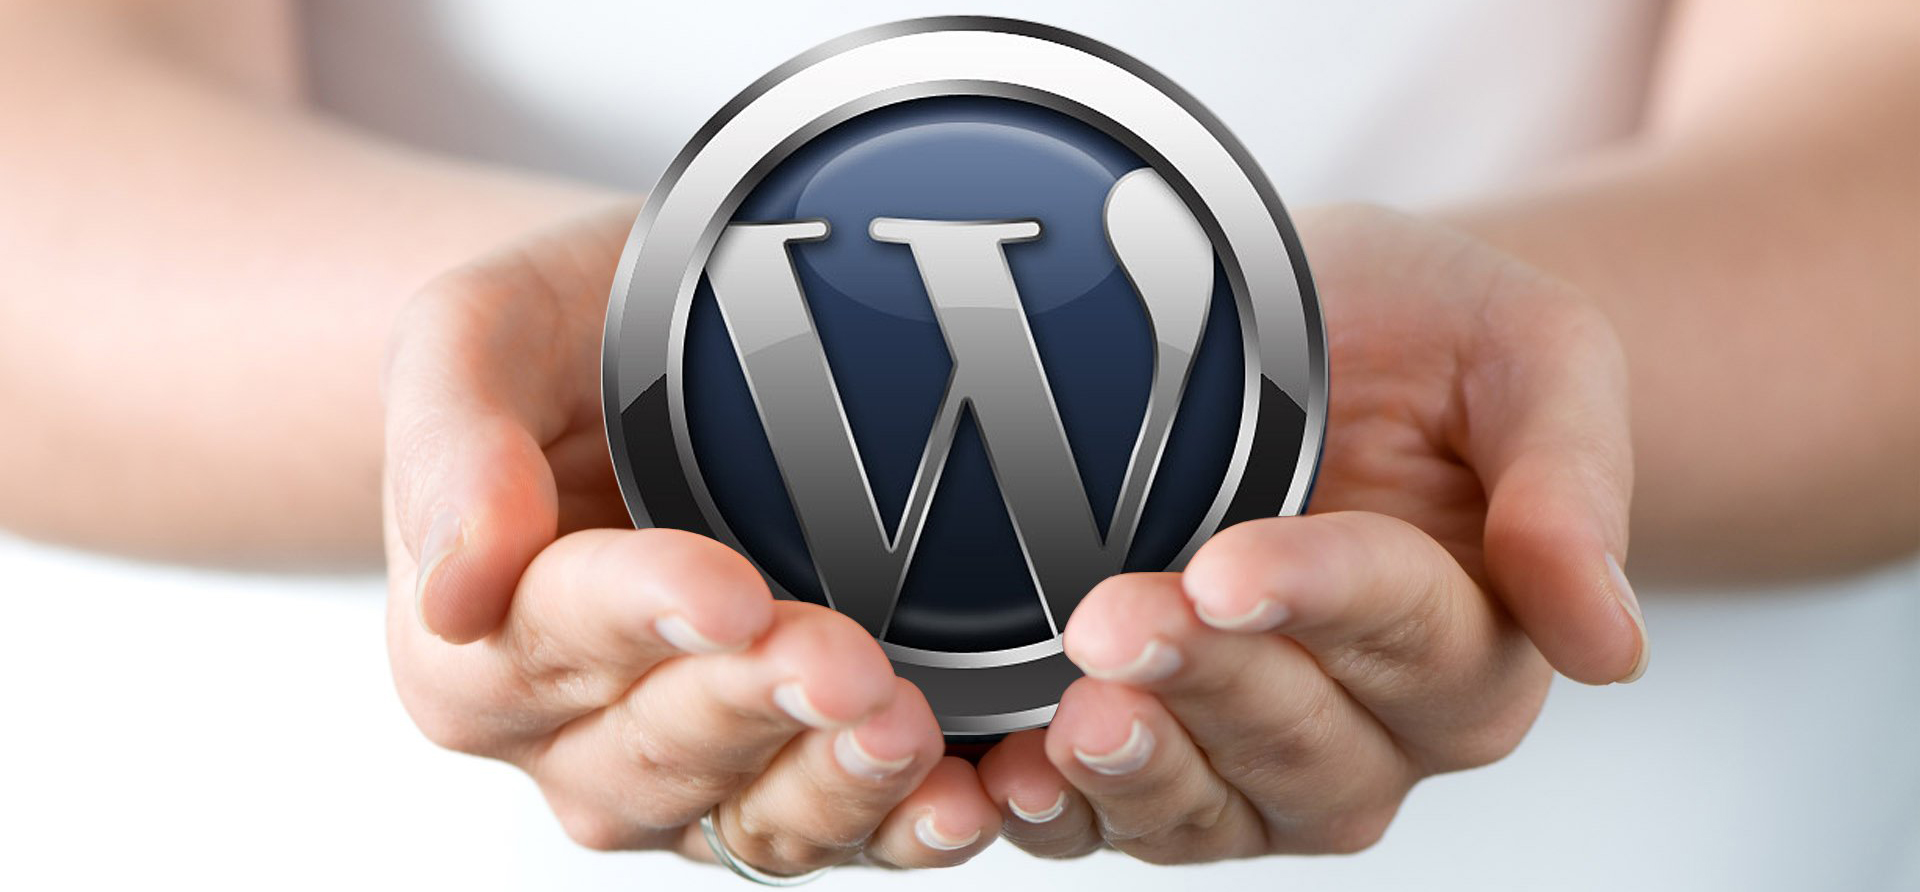 Image: hands holding WordPress logo ball